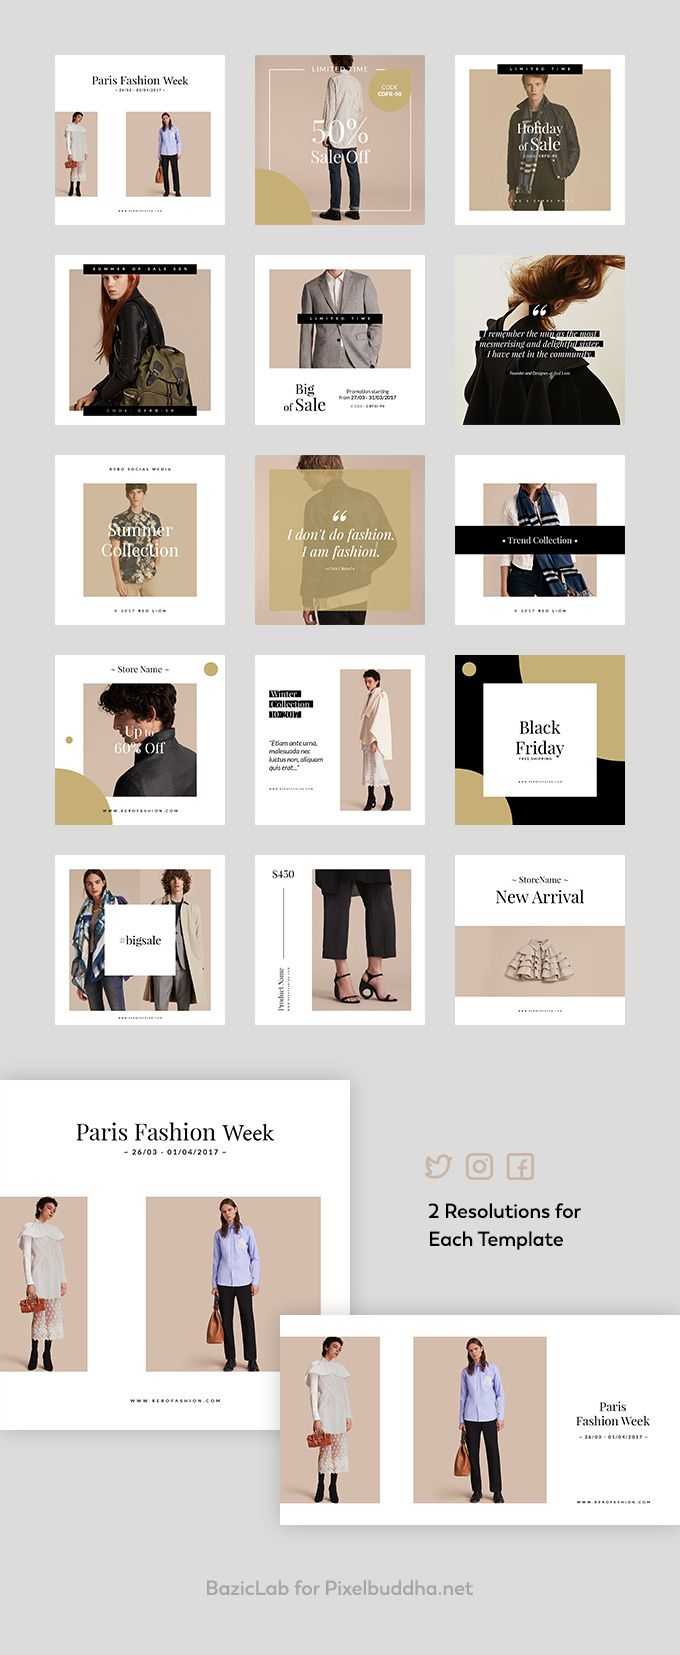 Sienna Free Fashion Social Media Templates For Instagram Design De Instagram Layout Do Instagram Marketing De Midia Social